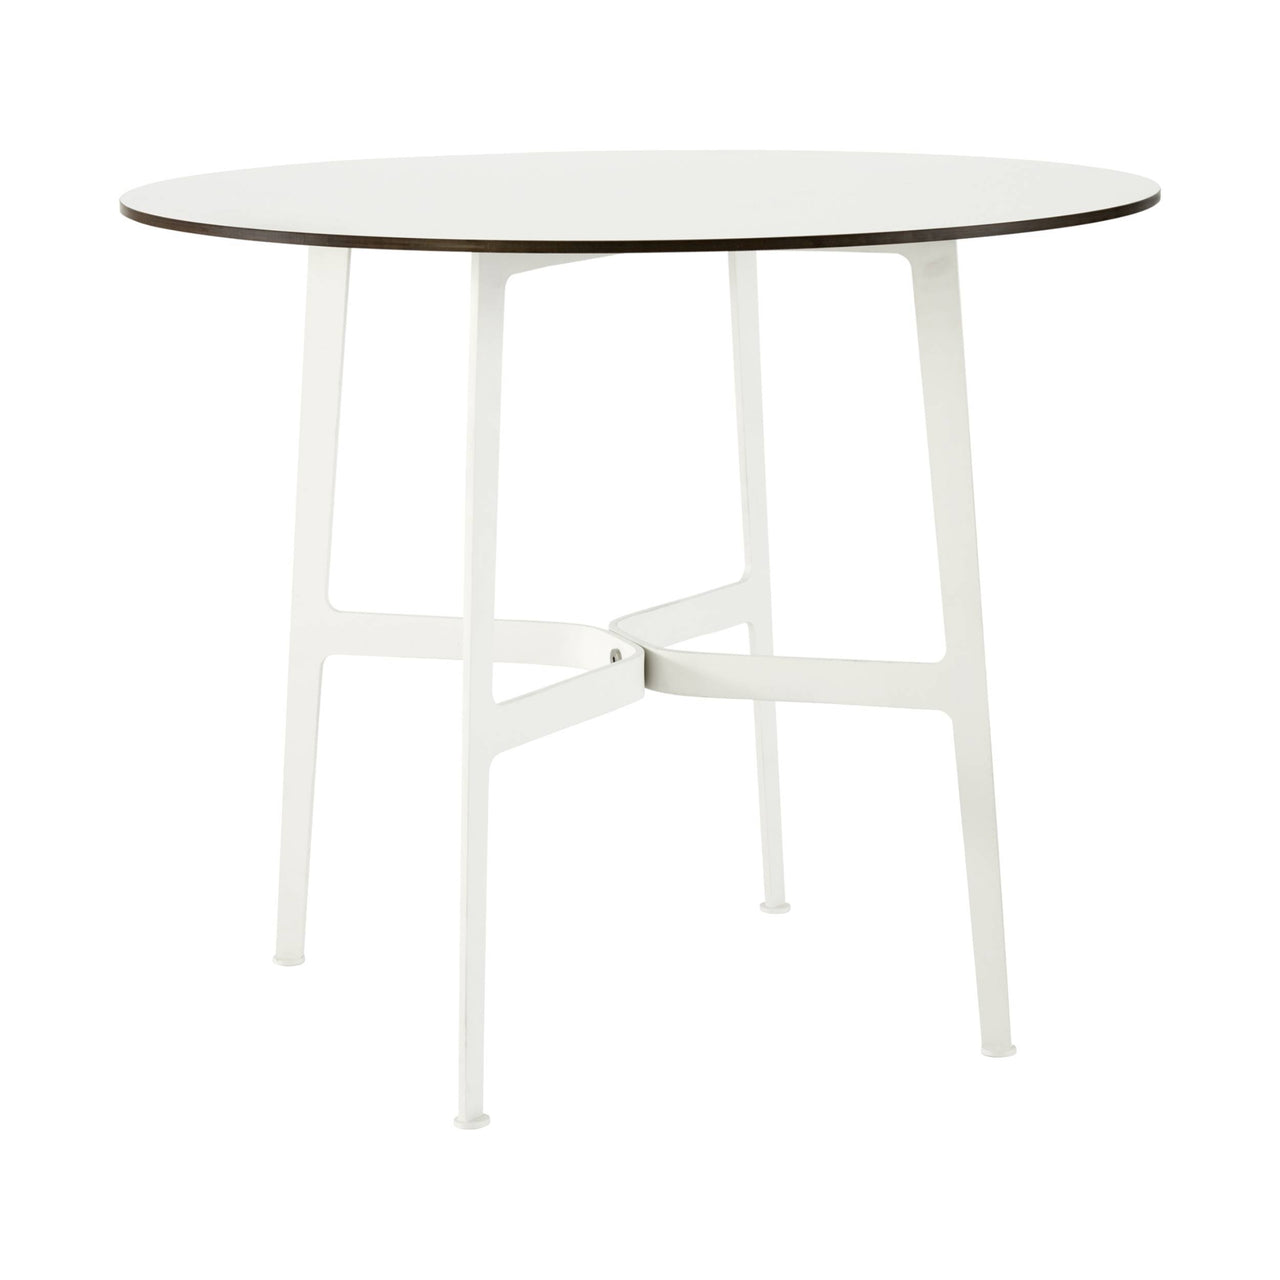 Eileen Circular Dining Table: Small + White + White Laminate